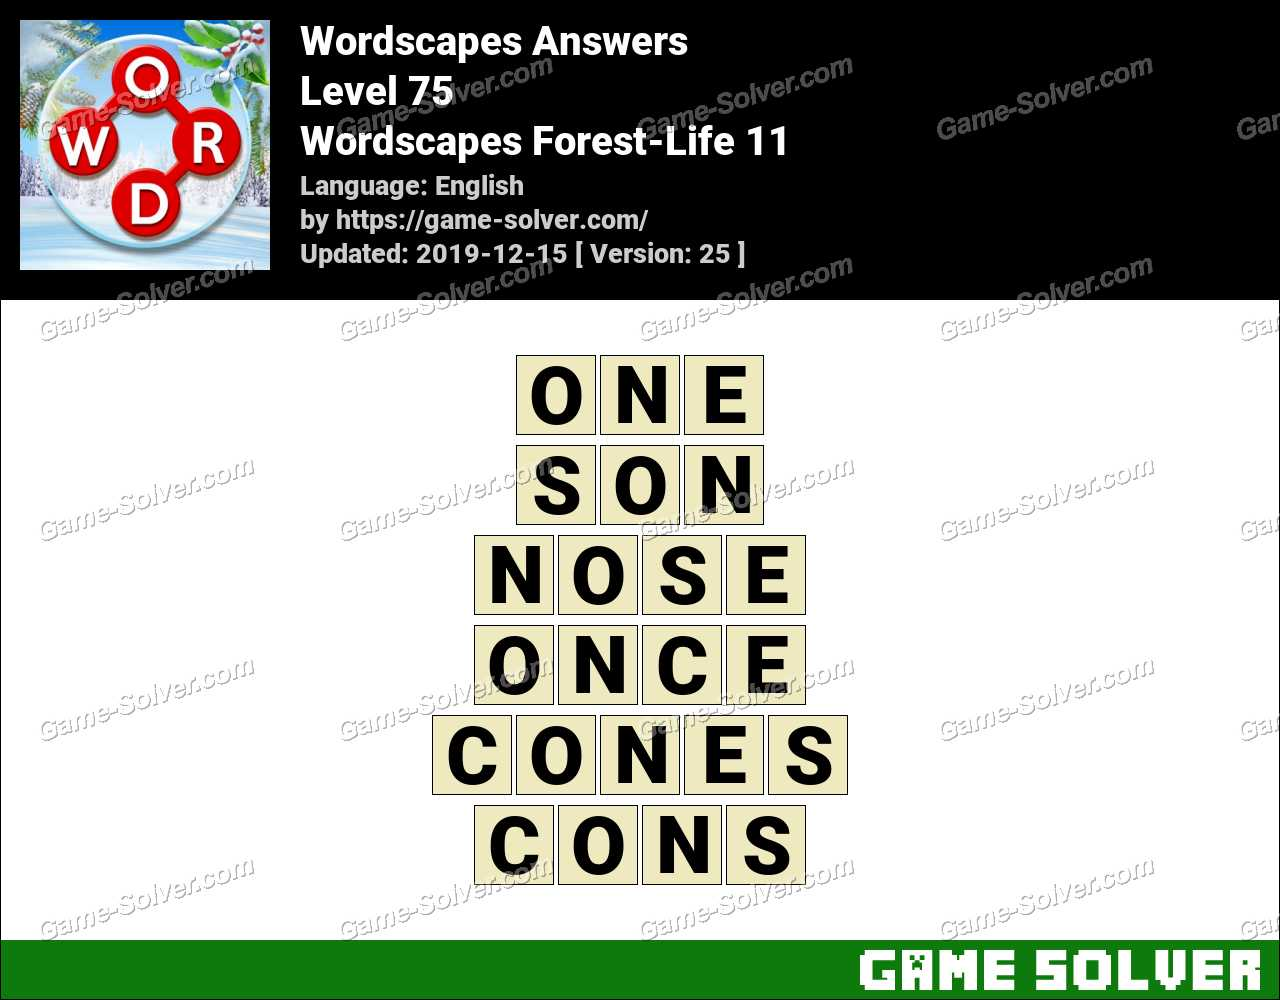 Wordscapes Forest-Life 11 Answers